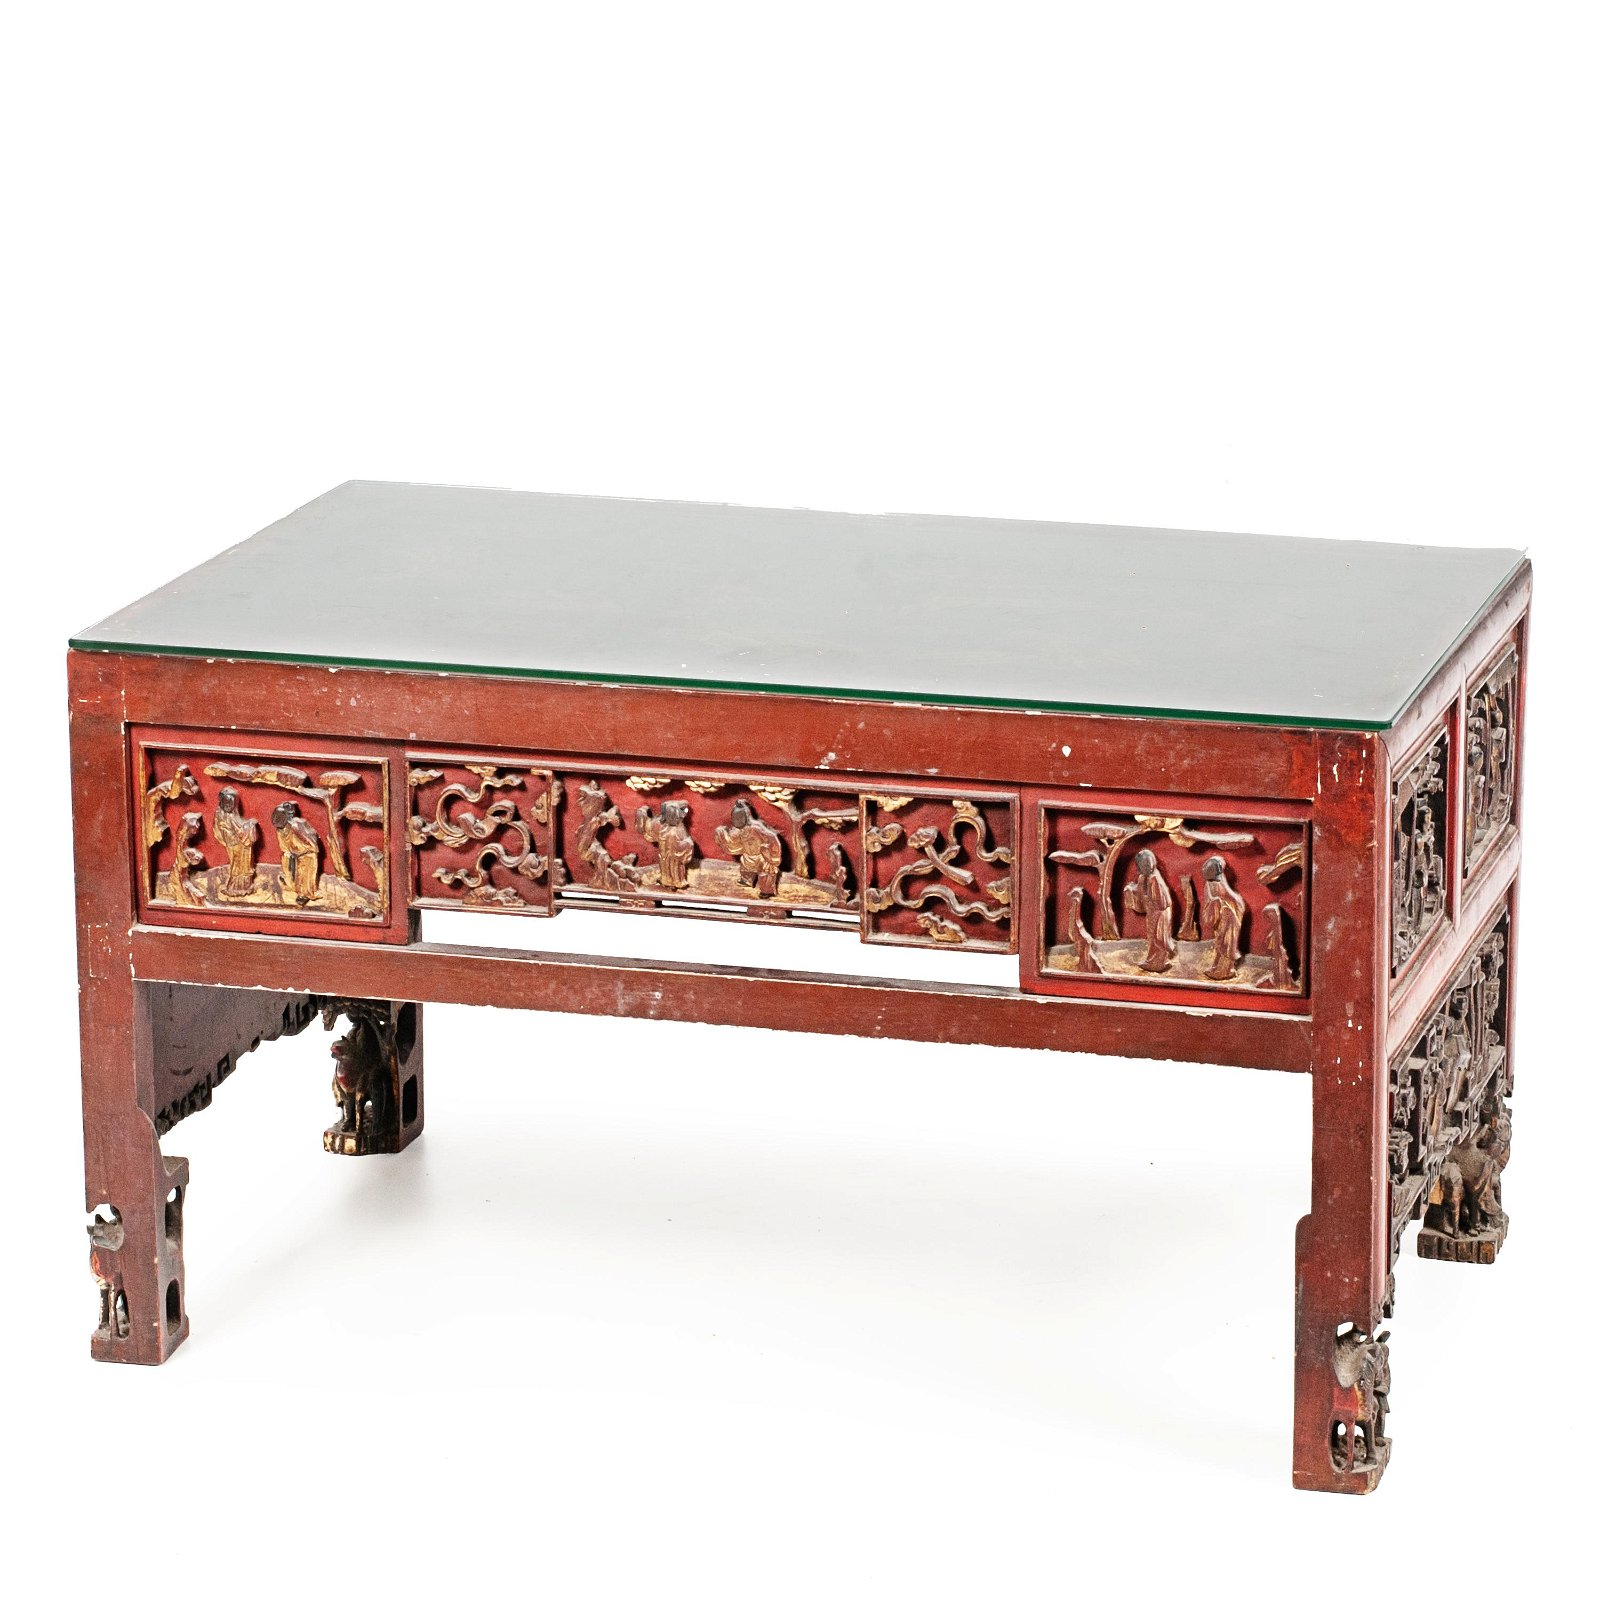 CHINESE COFFEE TABLE, FIRST THIRD C20th.